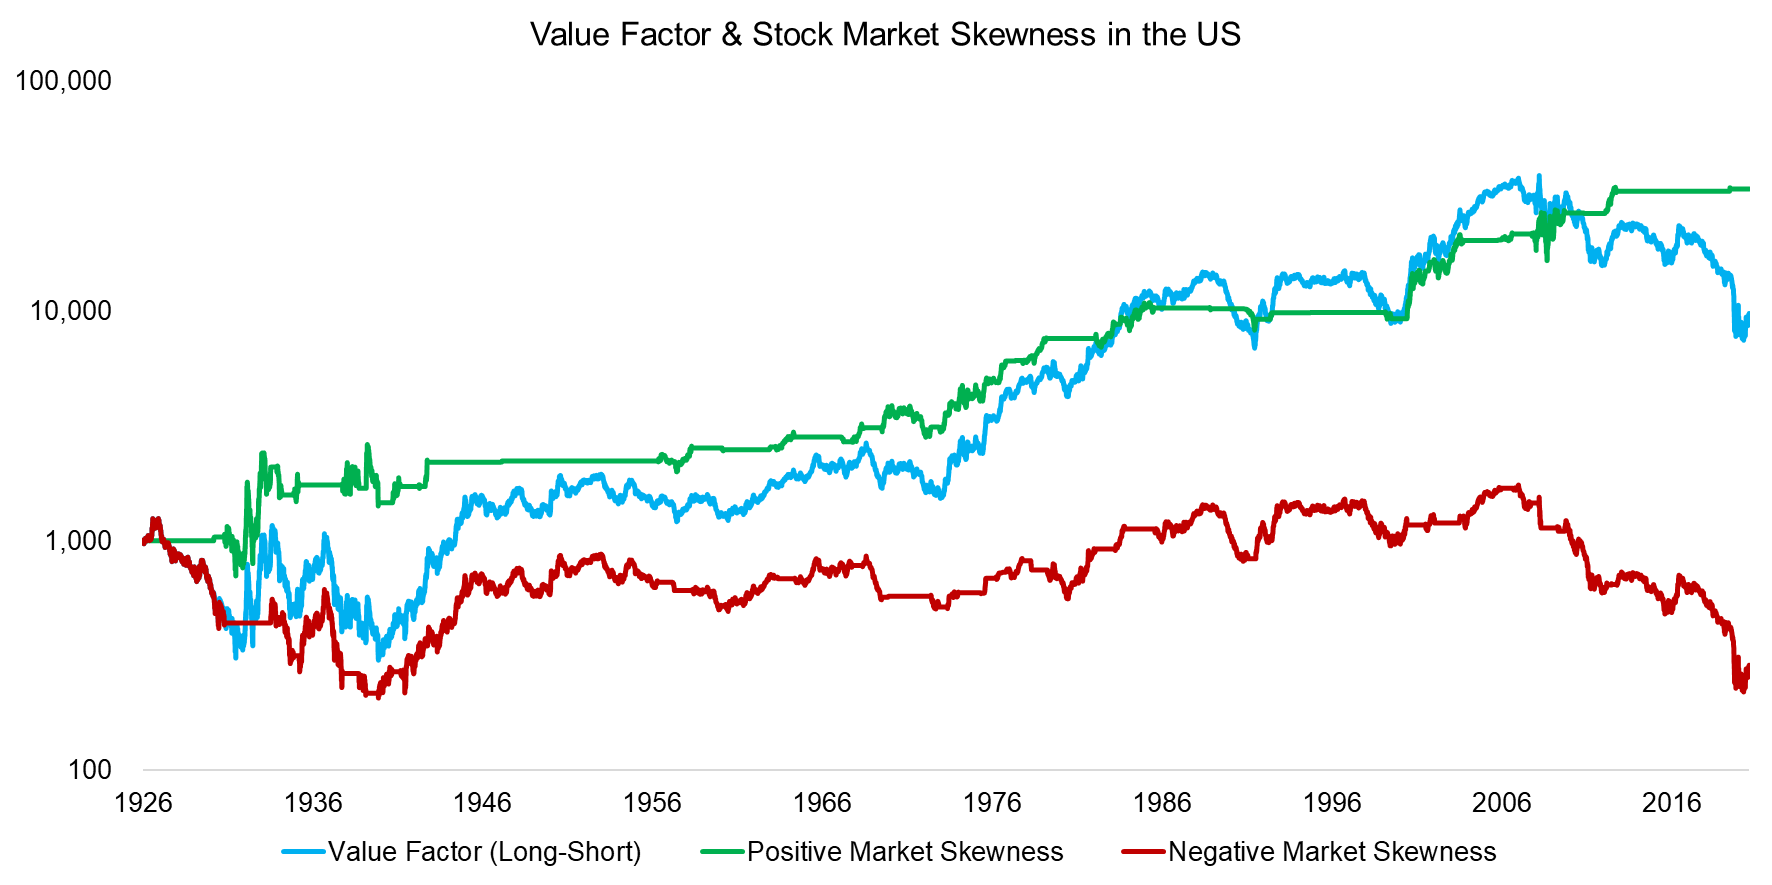 Value Factor & Stock Market Skewness in the US